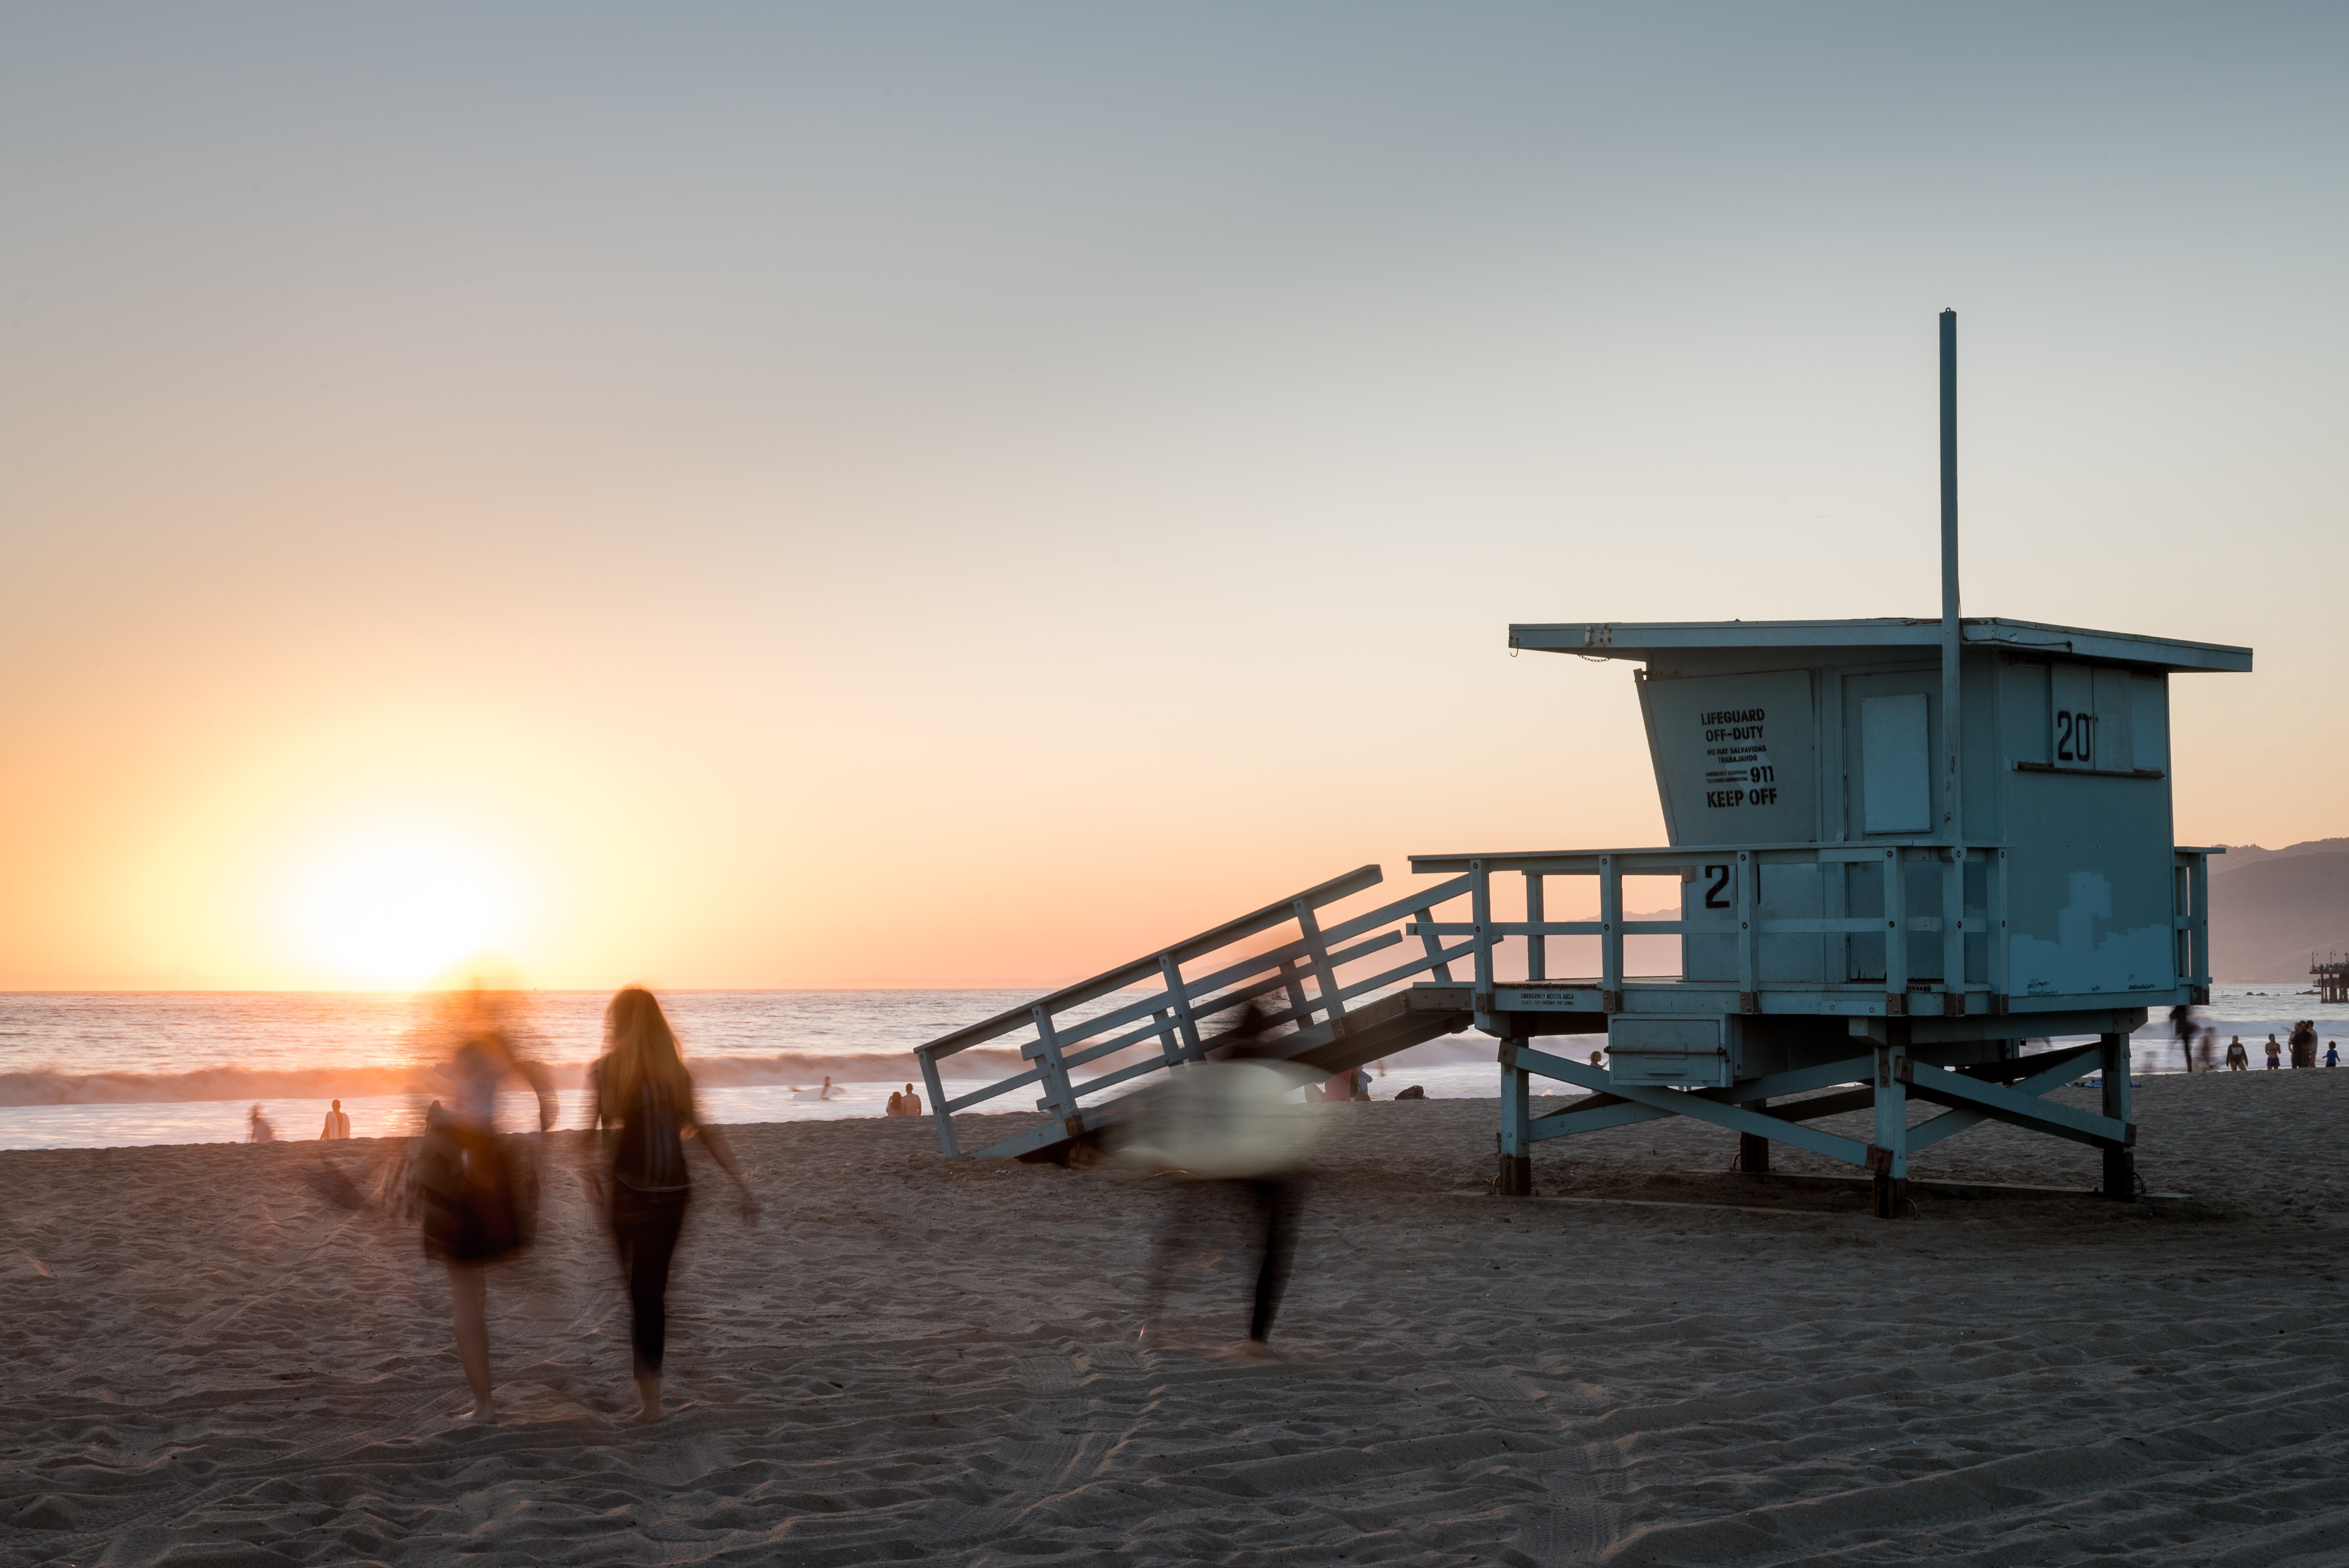 White Wooden Lifeguard Shed, Baywatch, Santa Monica, Waves, Water, HQ Photo